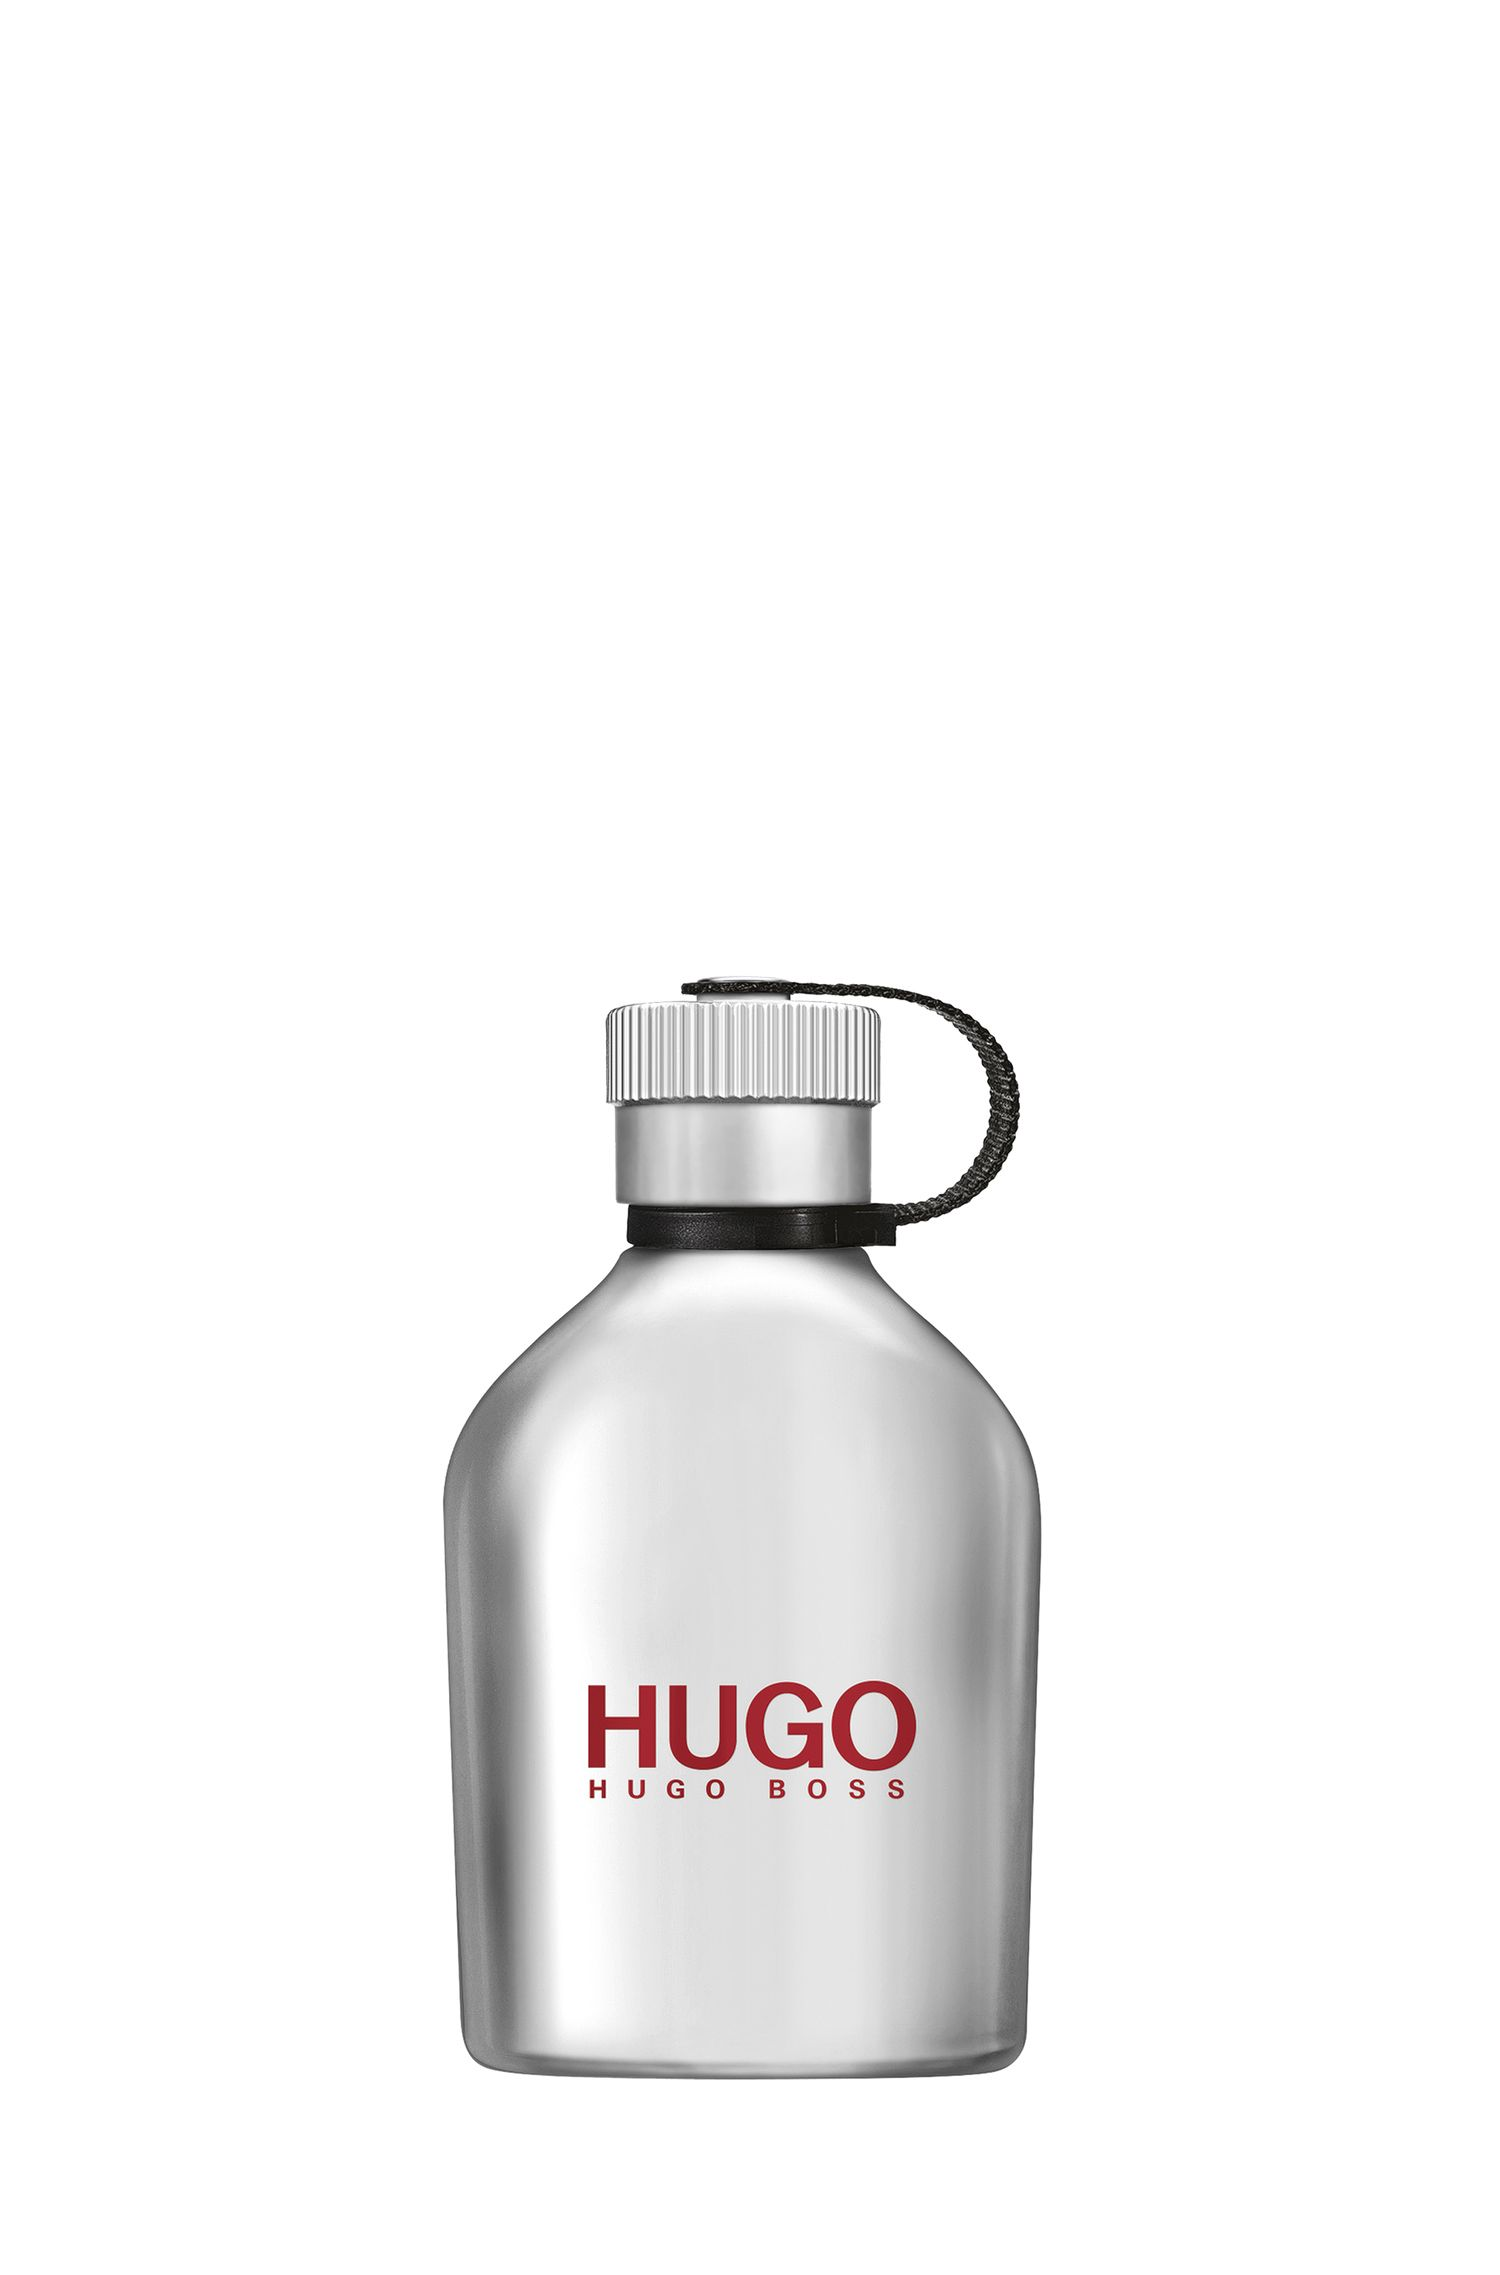 Eau de toilette HUGO Iced da 125 ml